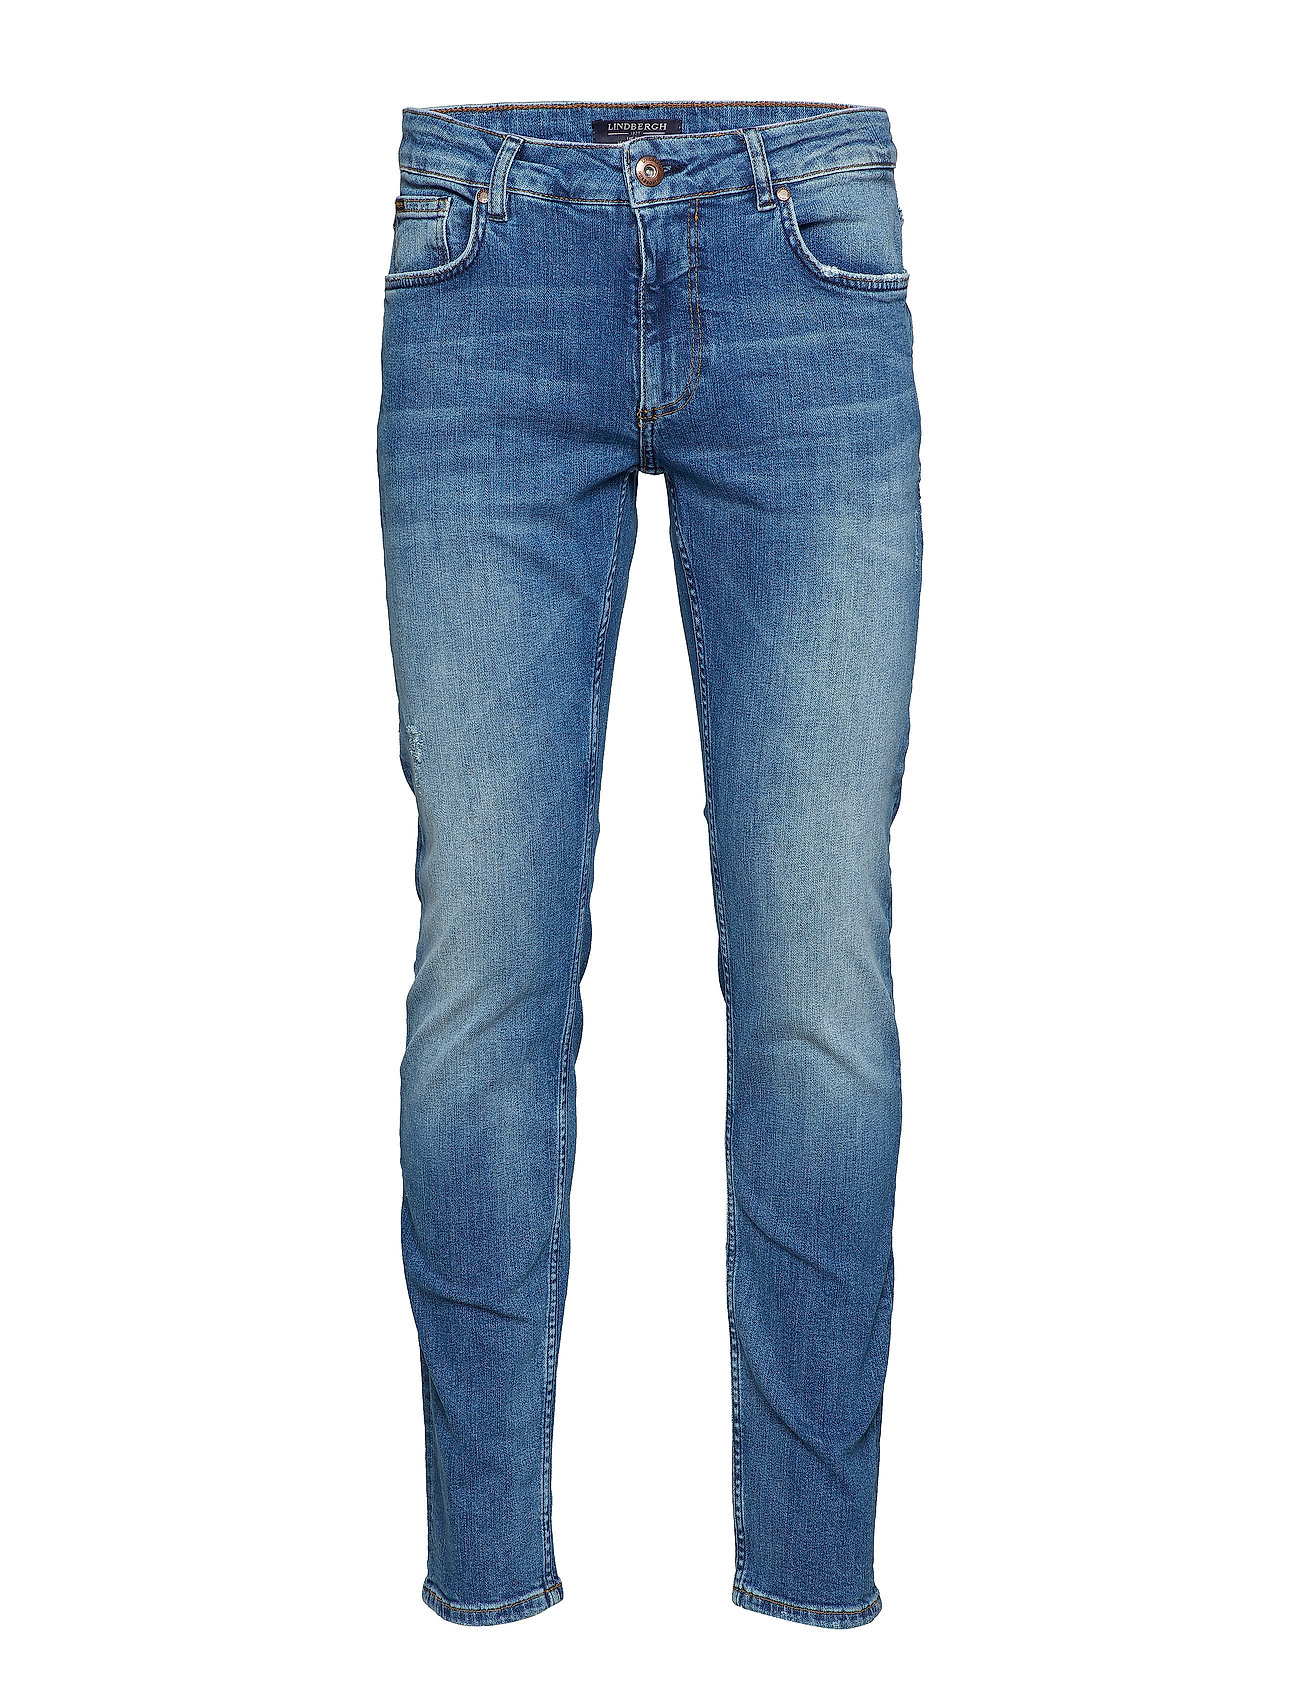 Fit JeansindigoLindbergh Tapered Fit JeansindigoLindbergh JeansindigoLindbergh Tapered Fit Tapered Fit JeansindigoLindbergh Tapered zVMpUS